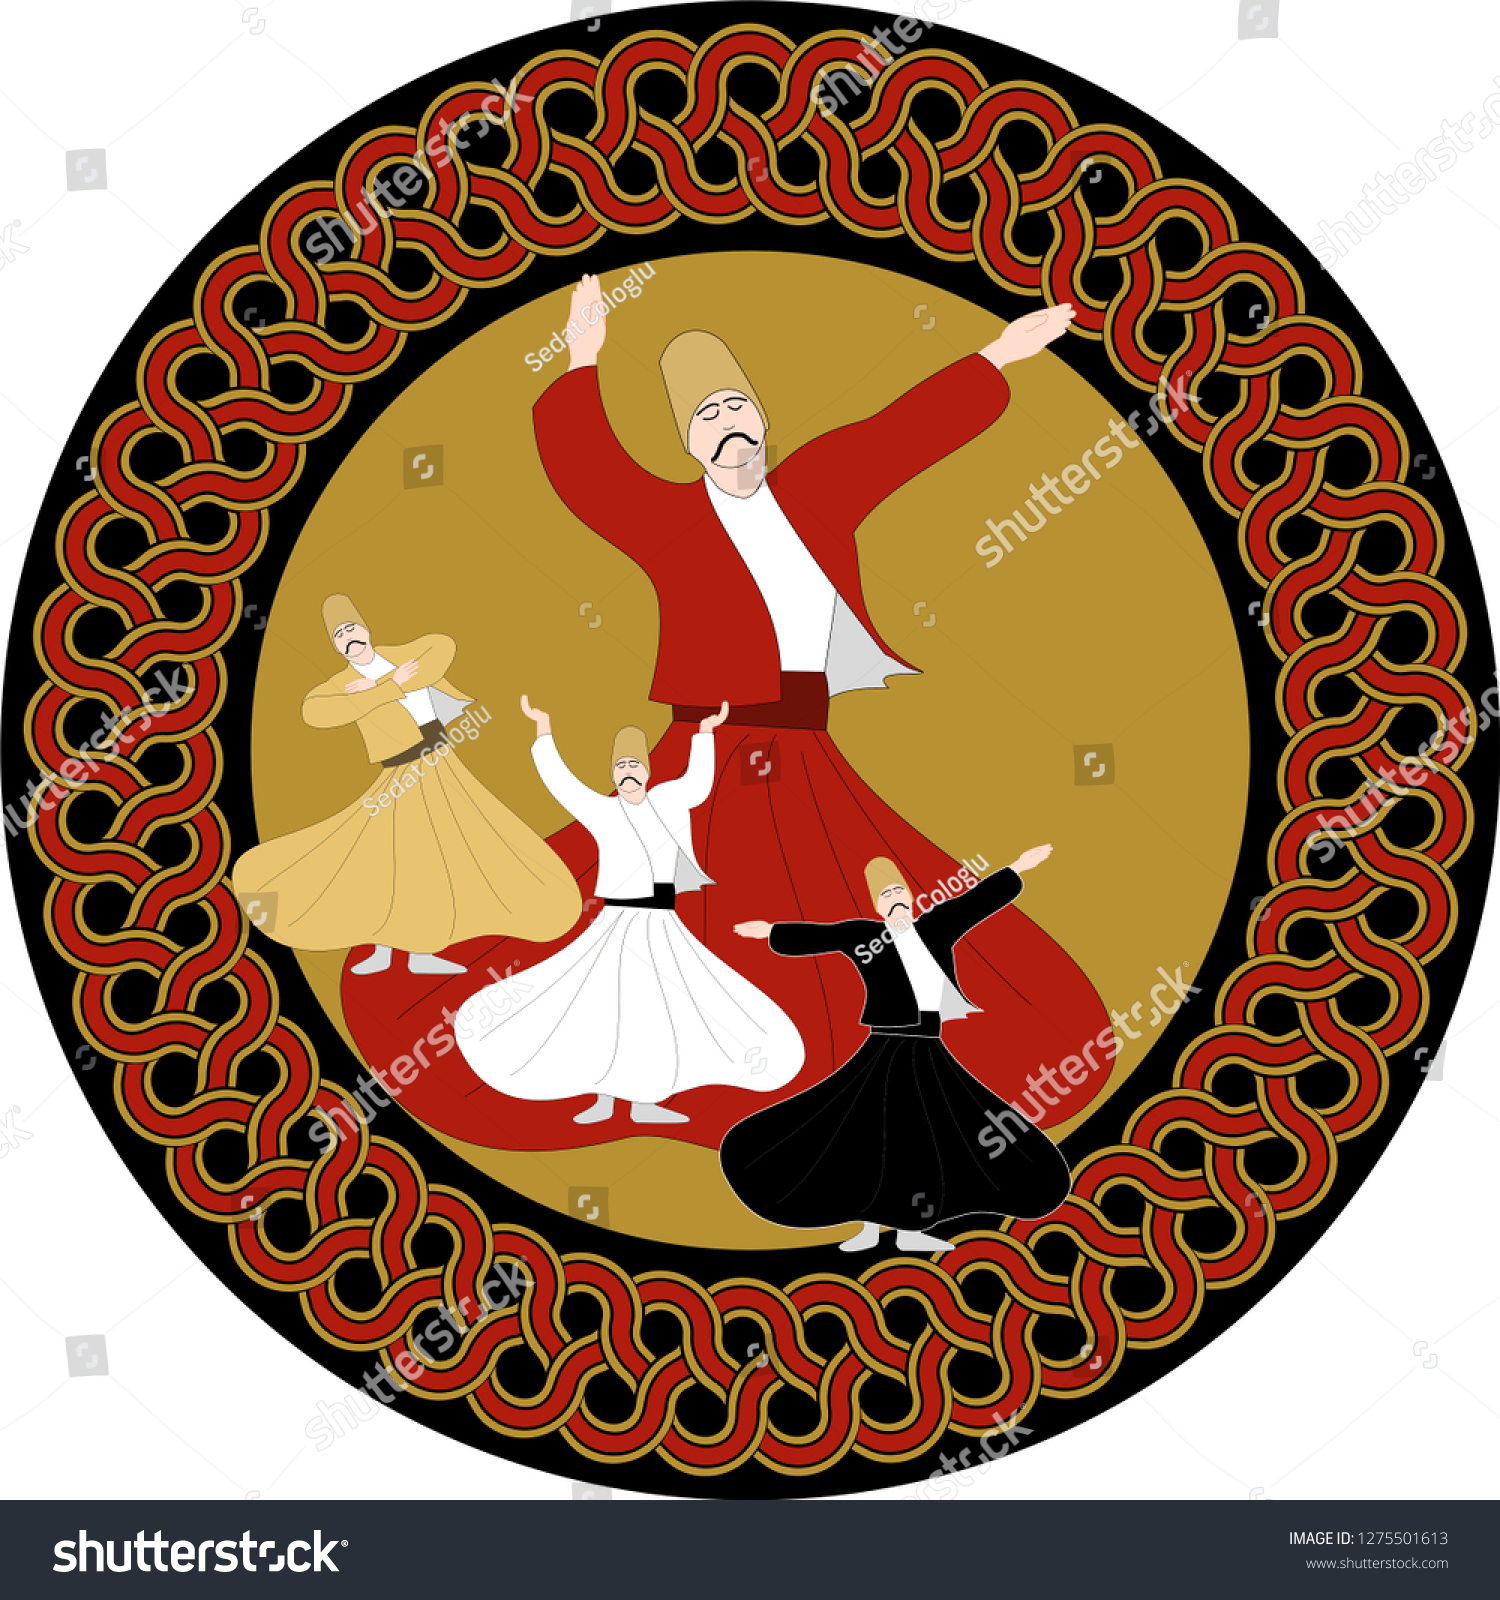 stock-vector-whirling-dervish-sufi-eps-format-vector-drawing-symbolic-study-of-mevlevi-mystical-dance-it-can-1275501613